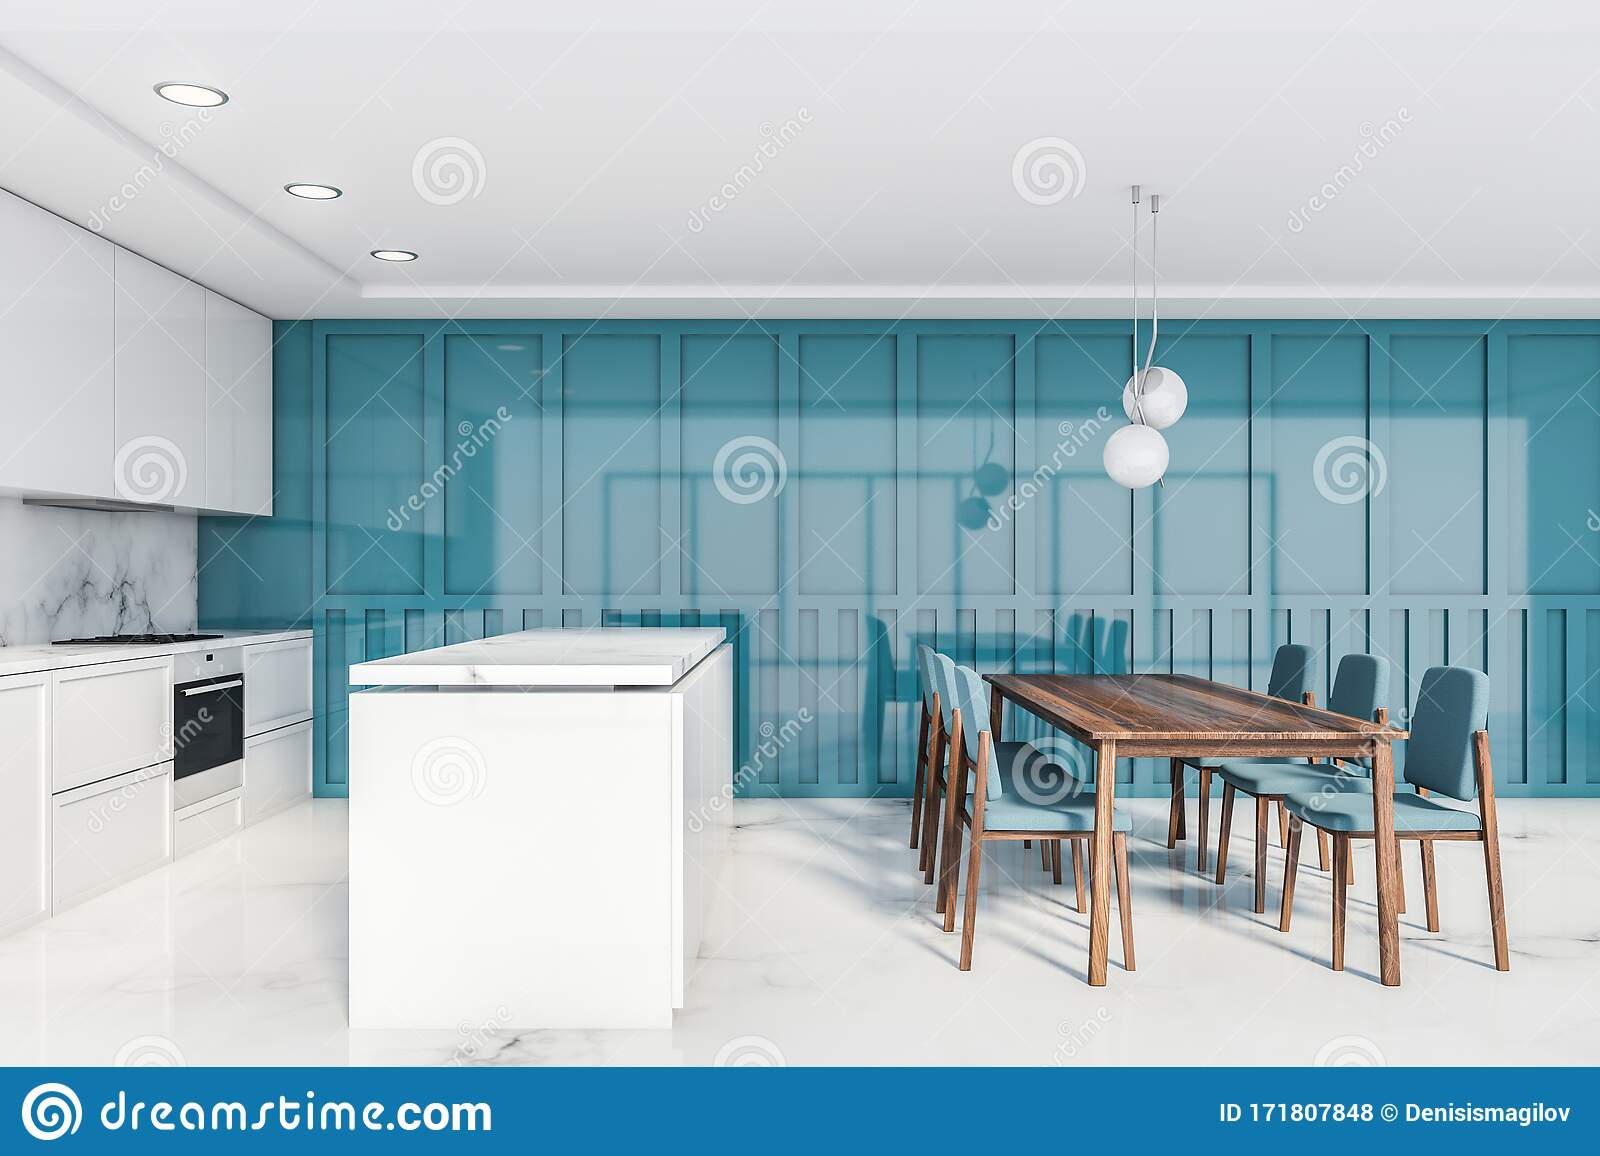 Blue Counters Stock Illustrations 159 Blue Counters Stock Illustrations Vectors Clipart Dreamstime